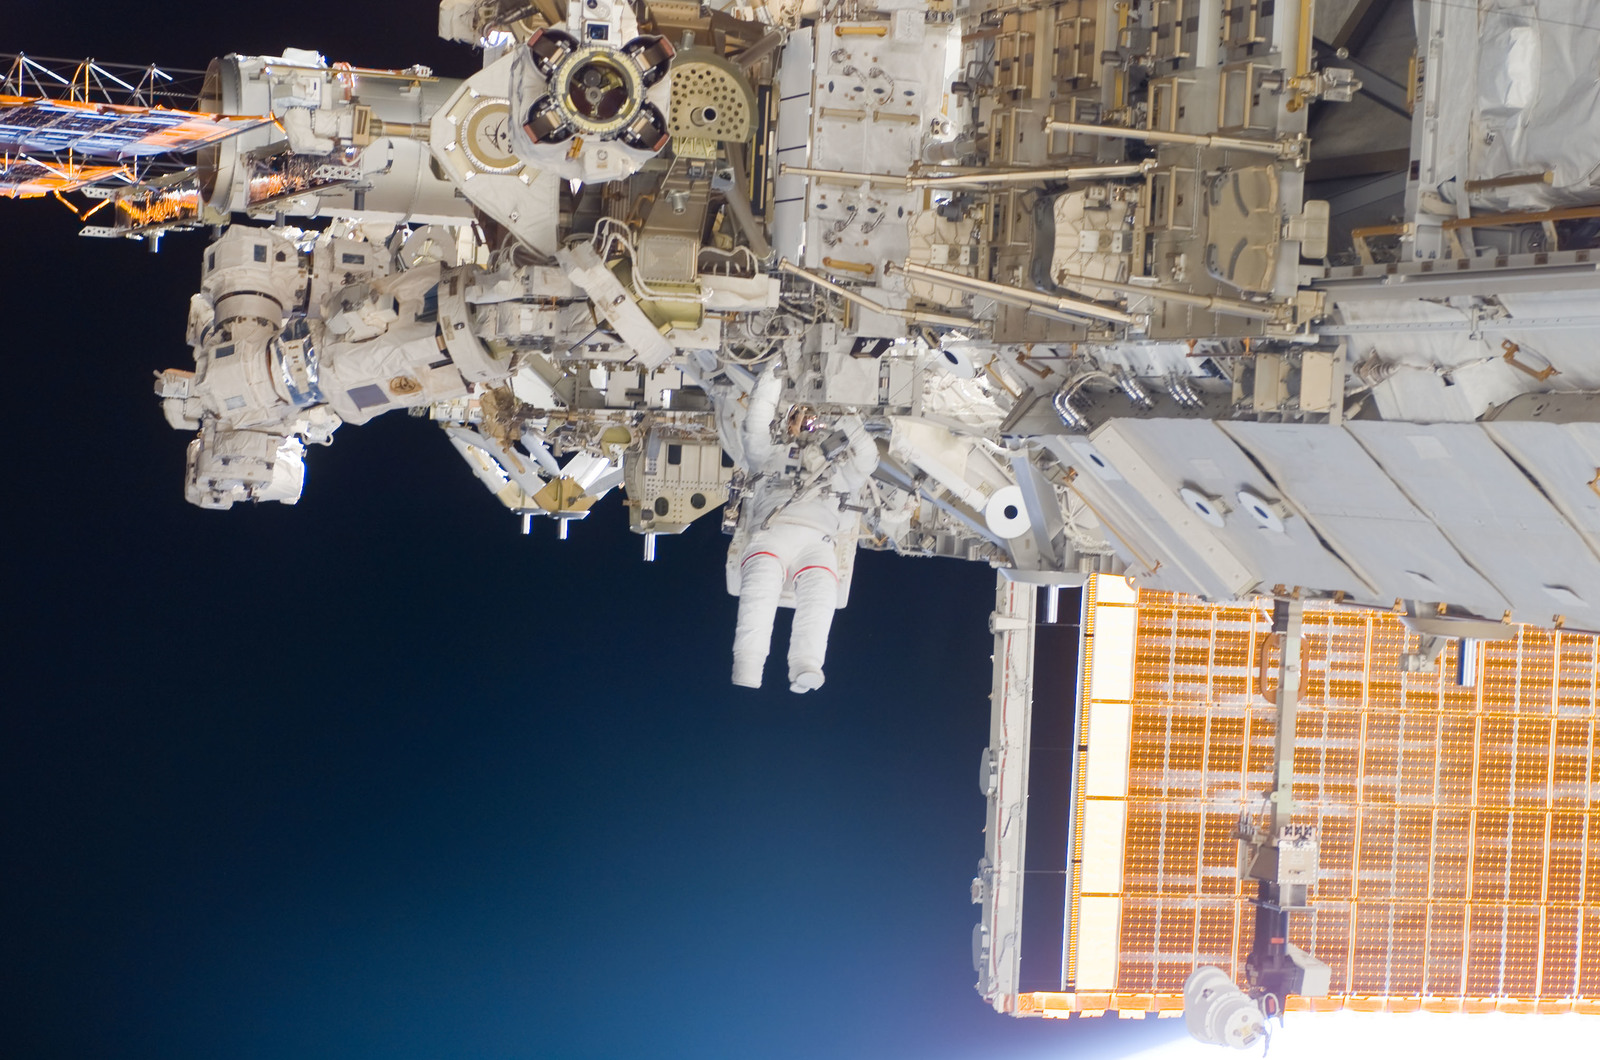 S118E06137 - STS-118 - View of Mastracchio during STS-118 EVA 1